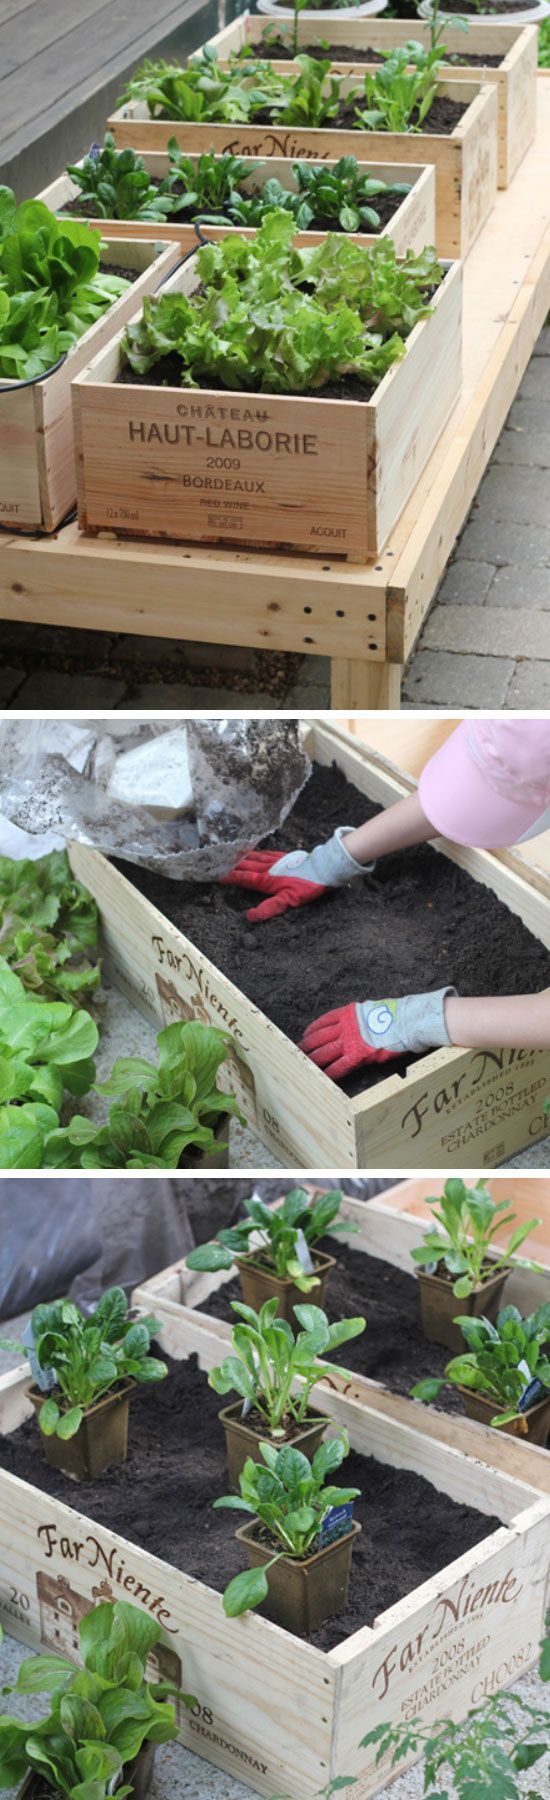 Upcycle Crates into Raised Vegetable Garden | Click Pic for 20 DIY Garden Ideas on a Budget | DIY Backyard Ideas on a Budget for Kids